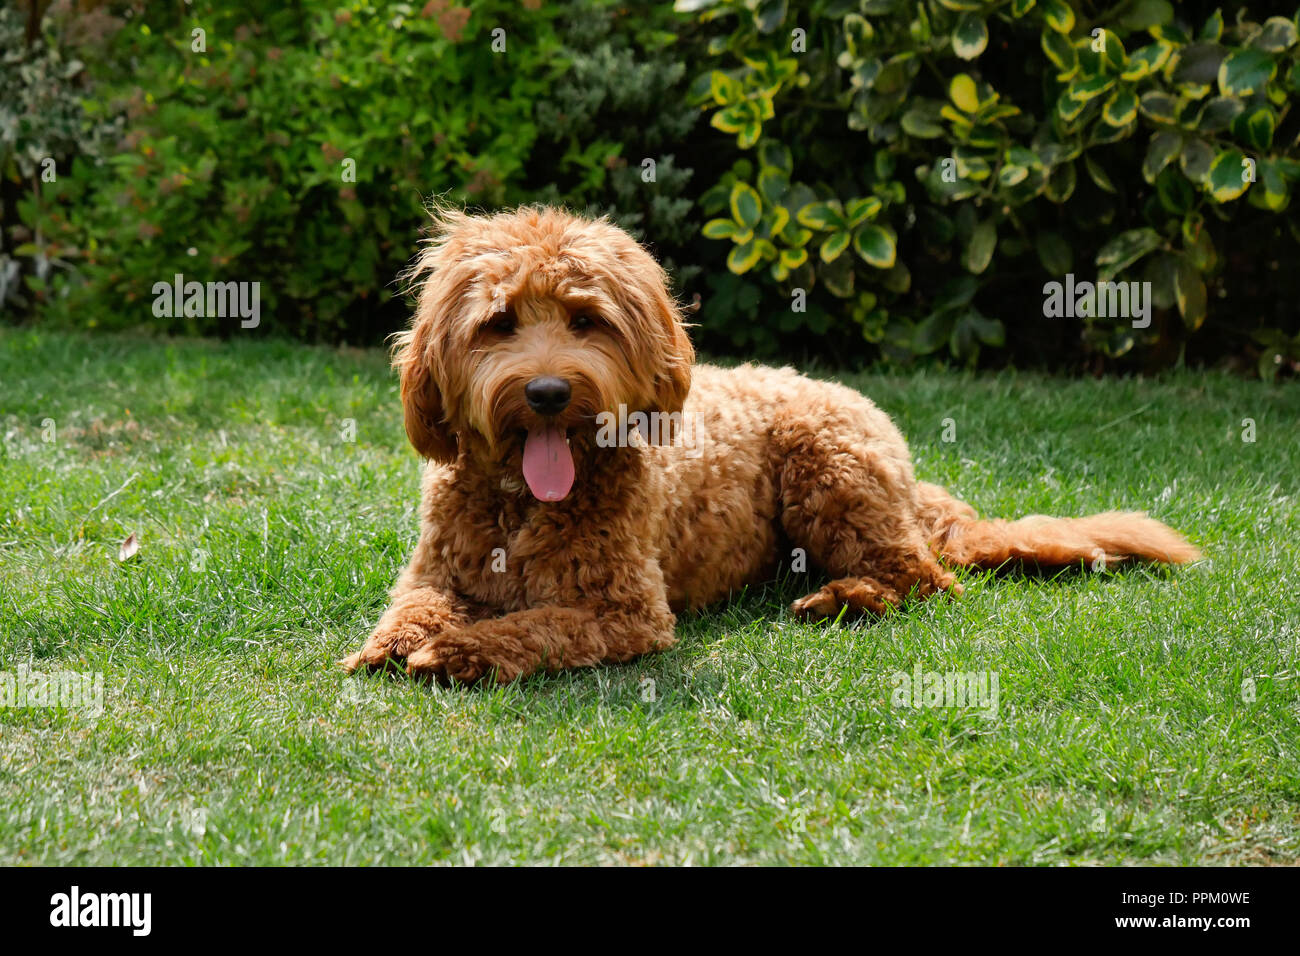 Red haired Cockapoo dog resting after at  in a garden setting - Stock Image